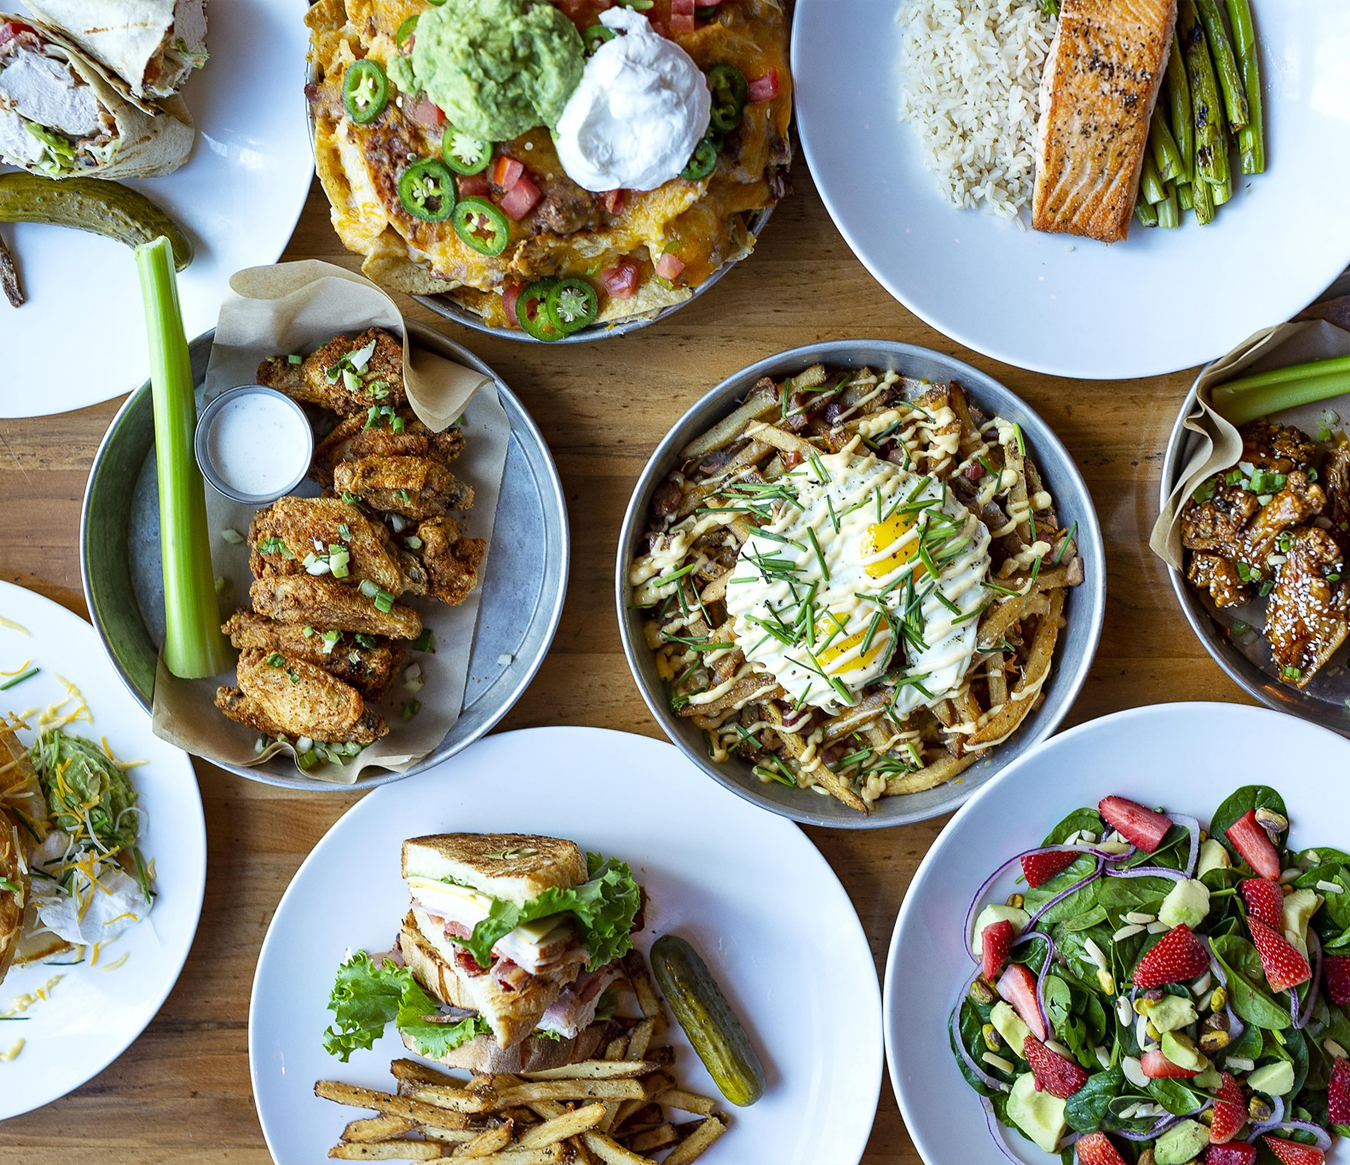 Where to Eat In Indianapolis - High Velocity Sports Bar